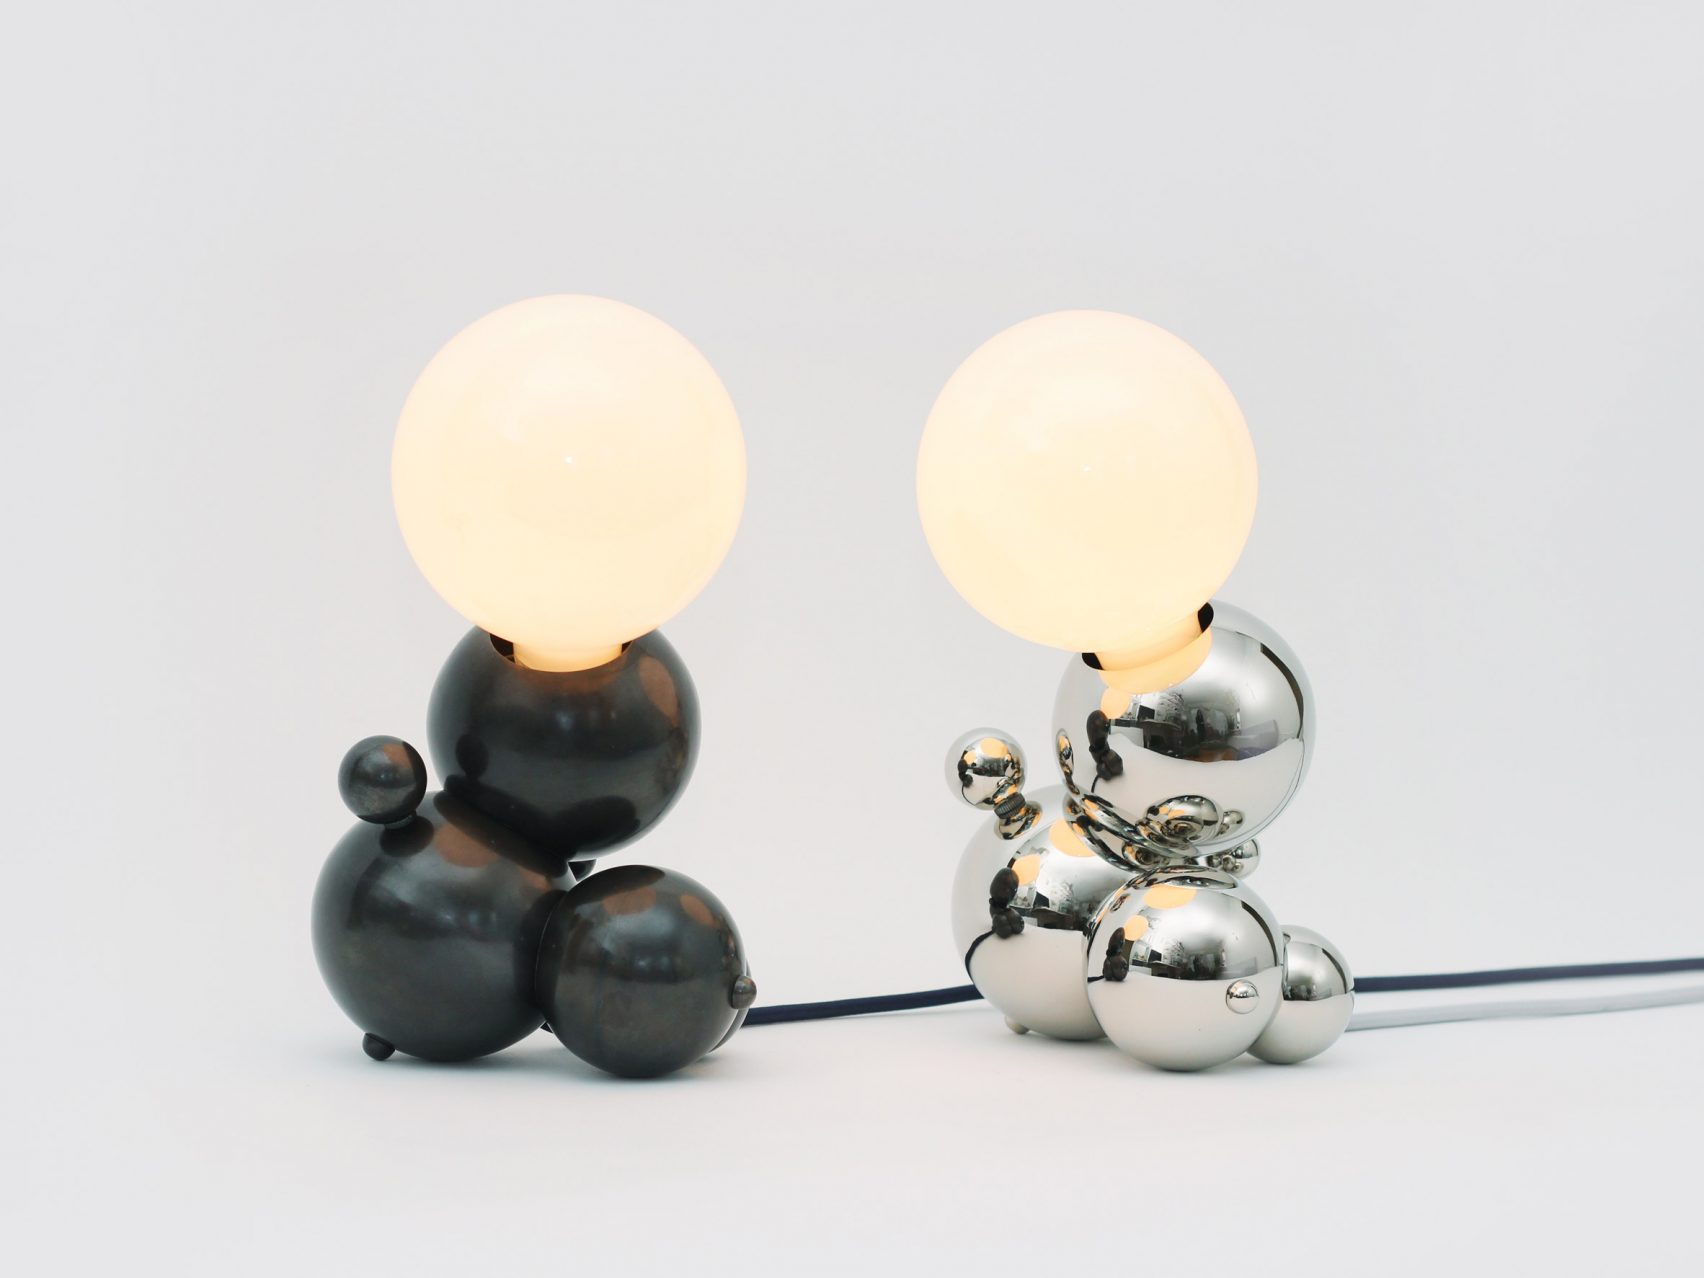 News Flash Bubble Shaped Lighting Collection By Rosie Li 4 bubble shaped lighting News Flash : Bubble Shaped Lighting Collection By Rosie Li News Flash Bubble Shaped Lighting Collection By Rosie Li 4